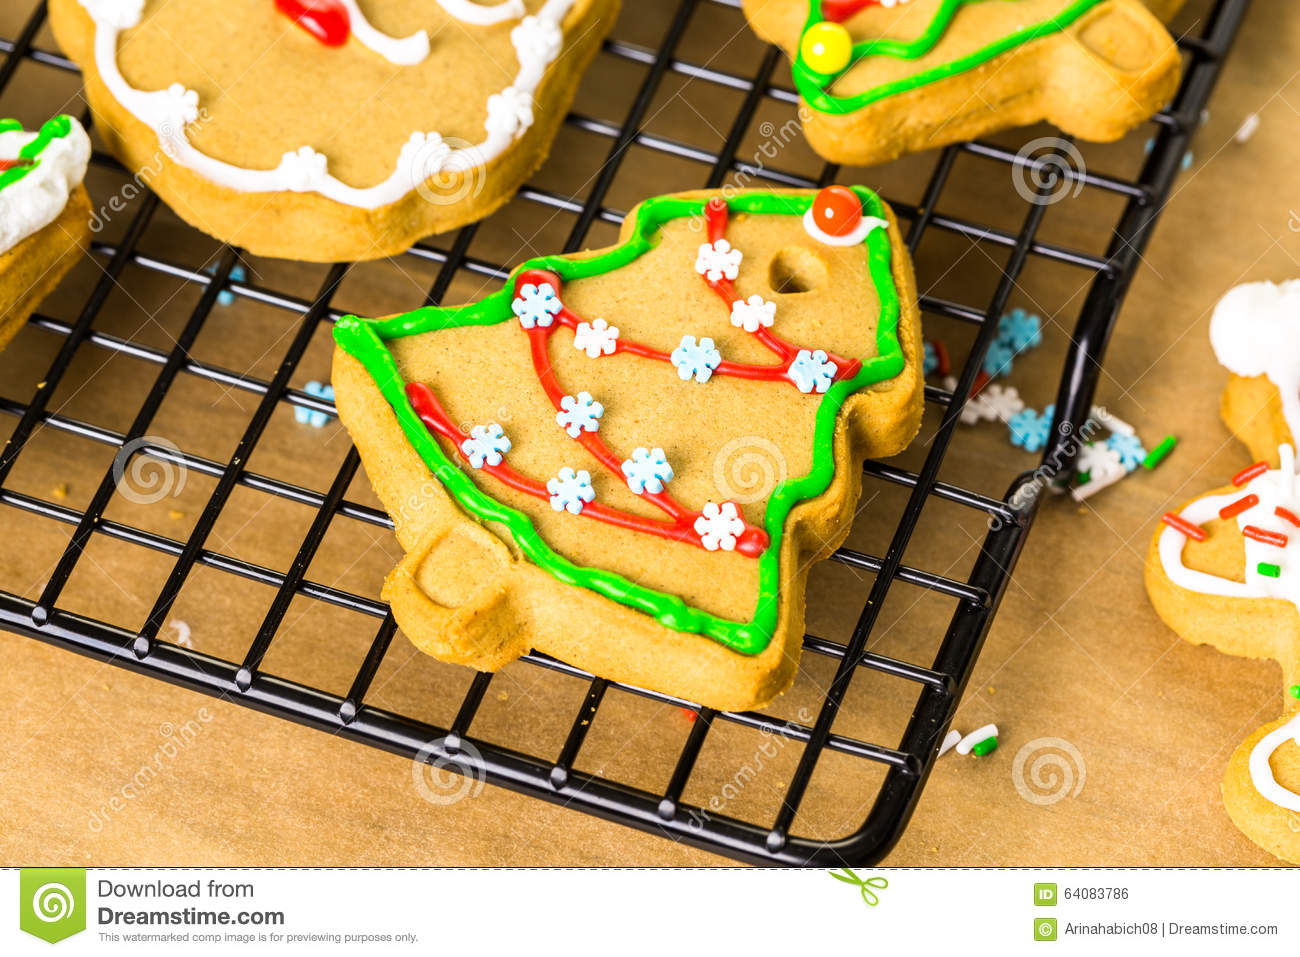 Decorating gingerbread cookies with royal icing and colorful candies.